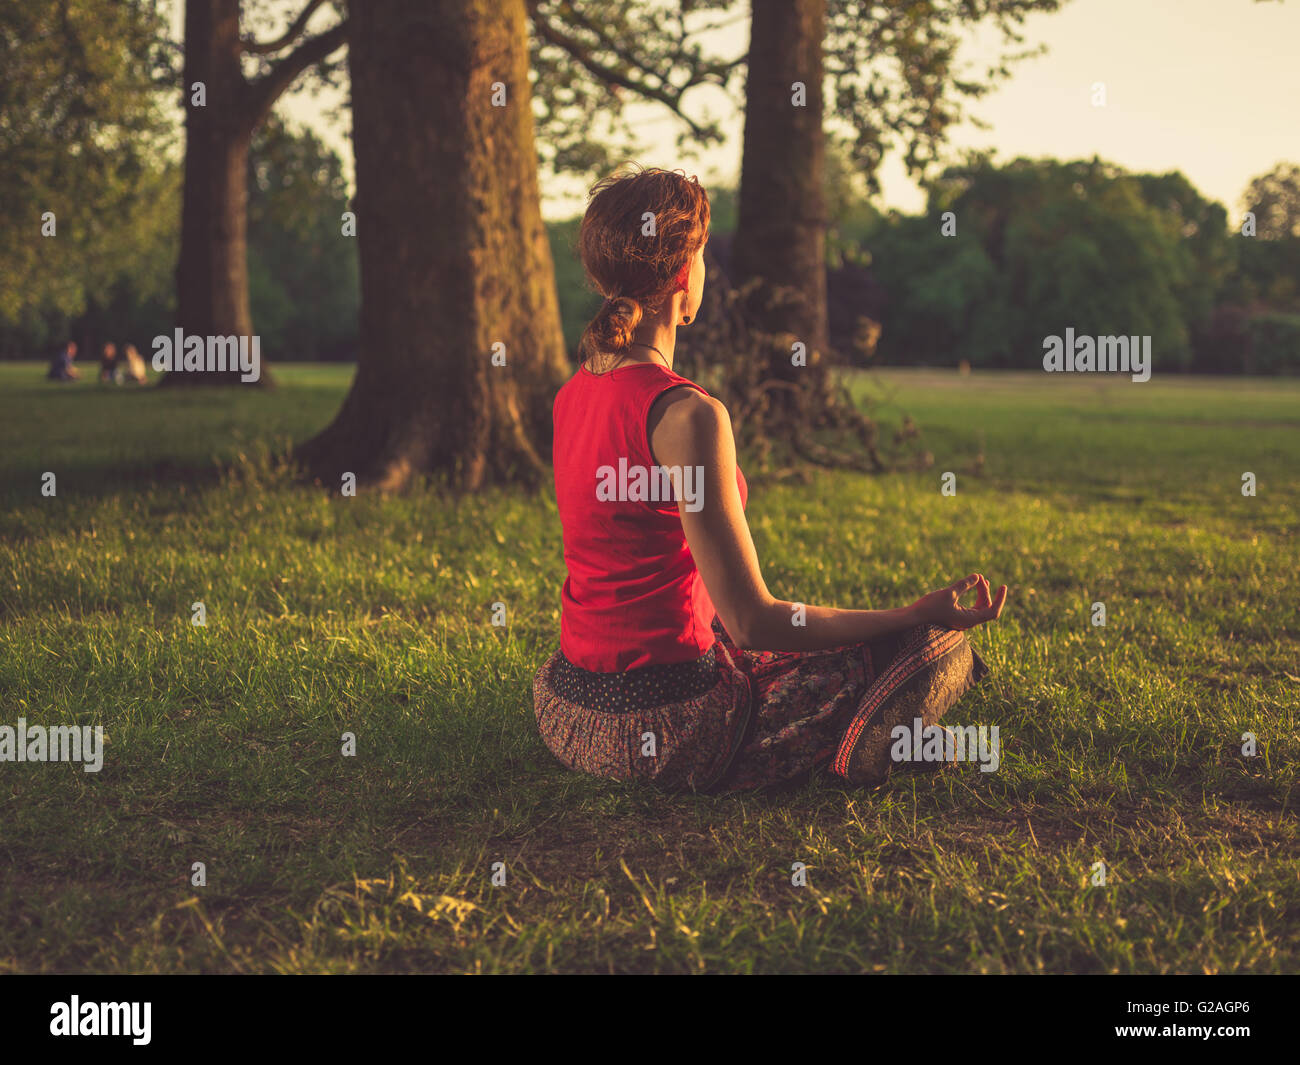 A young woman is sitting on the grass in a park and is meditating at sunset - Stock Image